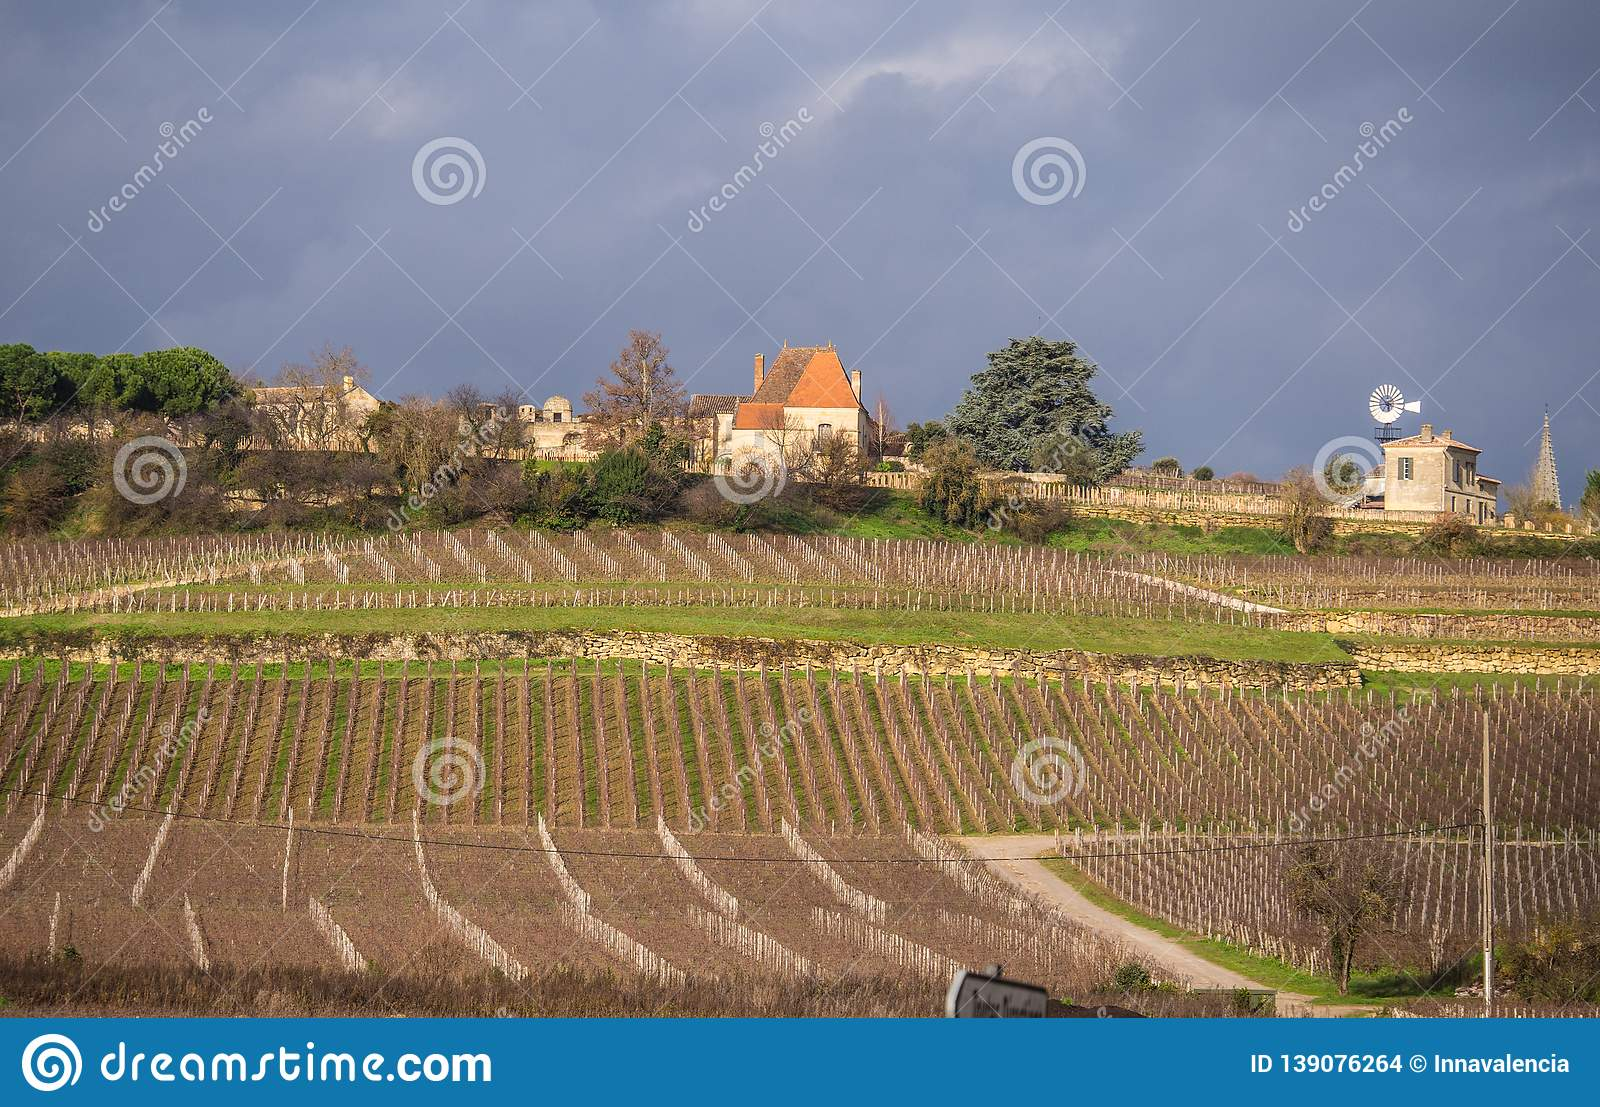 Bordeaux vineyards. Vineyards and hills in autumn.